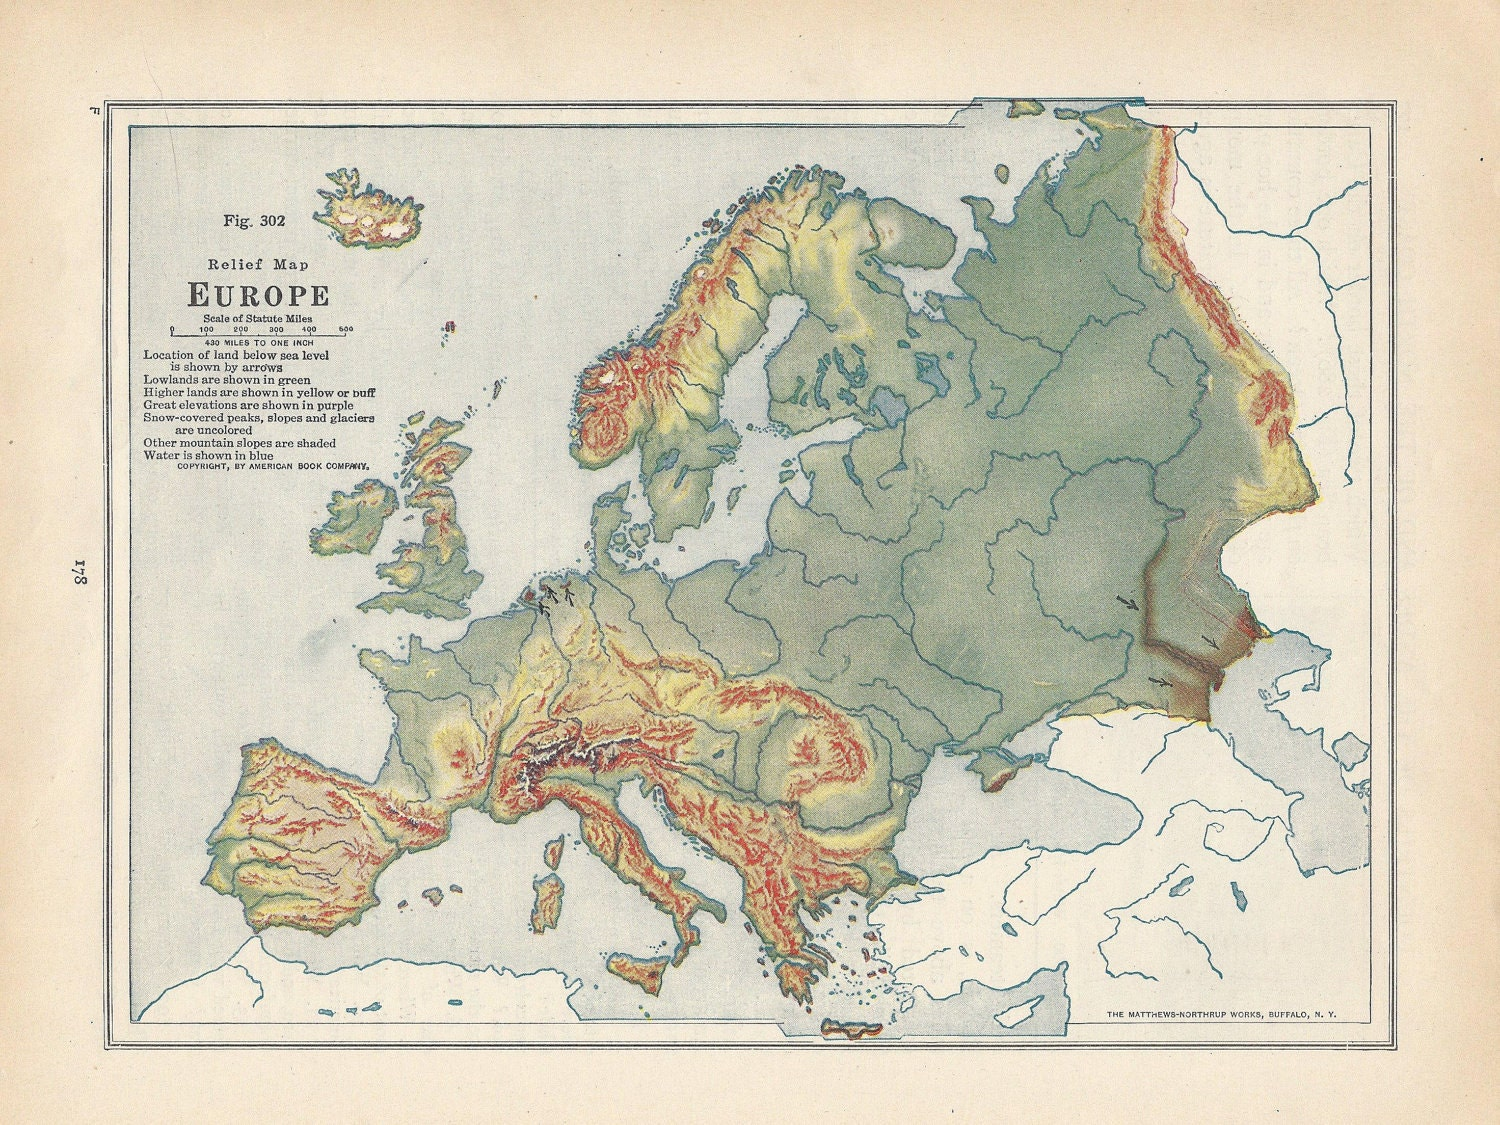 Vintage Map Europe Relief Map 1920s by VintageButtercup on Etsy